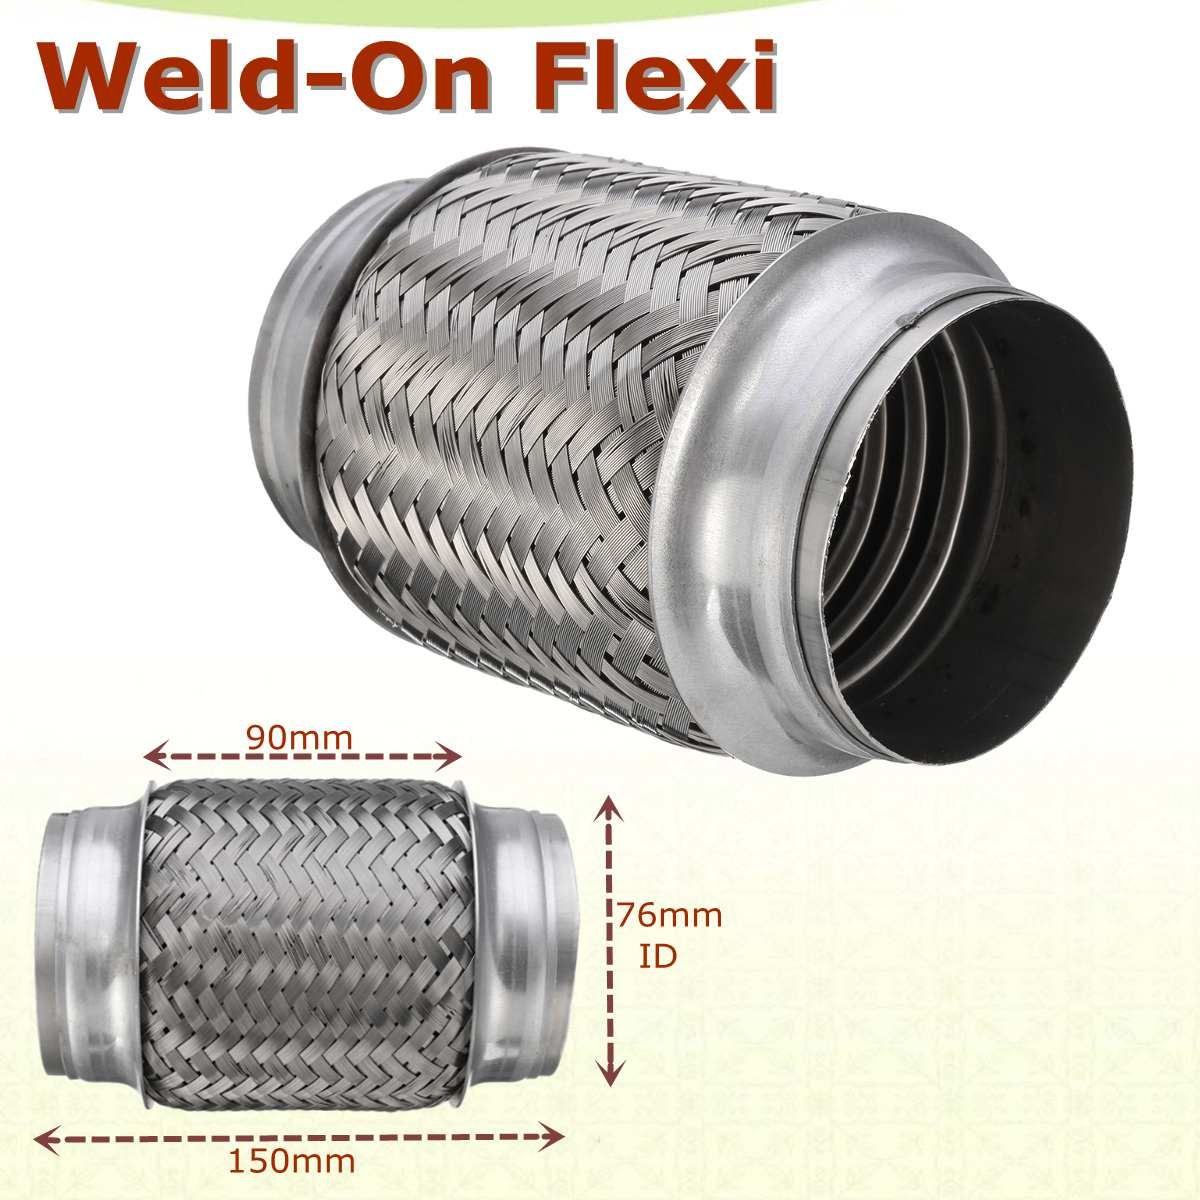 Weld-On 3 x 6 Stainless Exhaust Flex Tube Joint Flexi Repair Flexi pipe 76mm x 150mmWeld-On 3 x 6 Stainless Exhaust Flex Tube Joint Flexi Repair Flexi pipe 76mm x 150mm